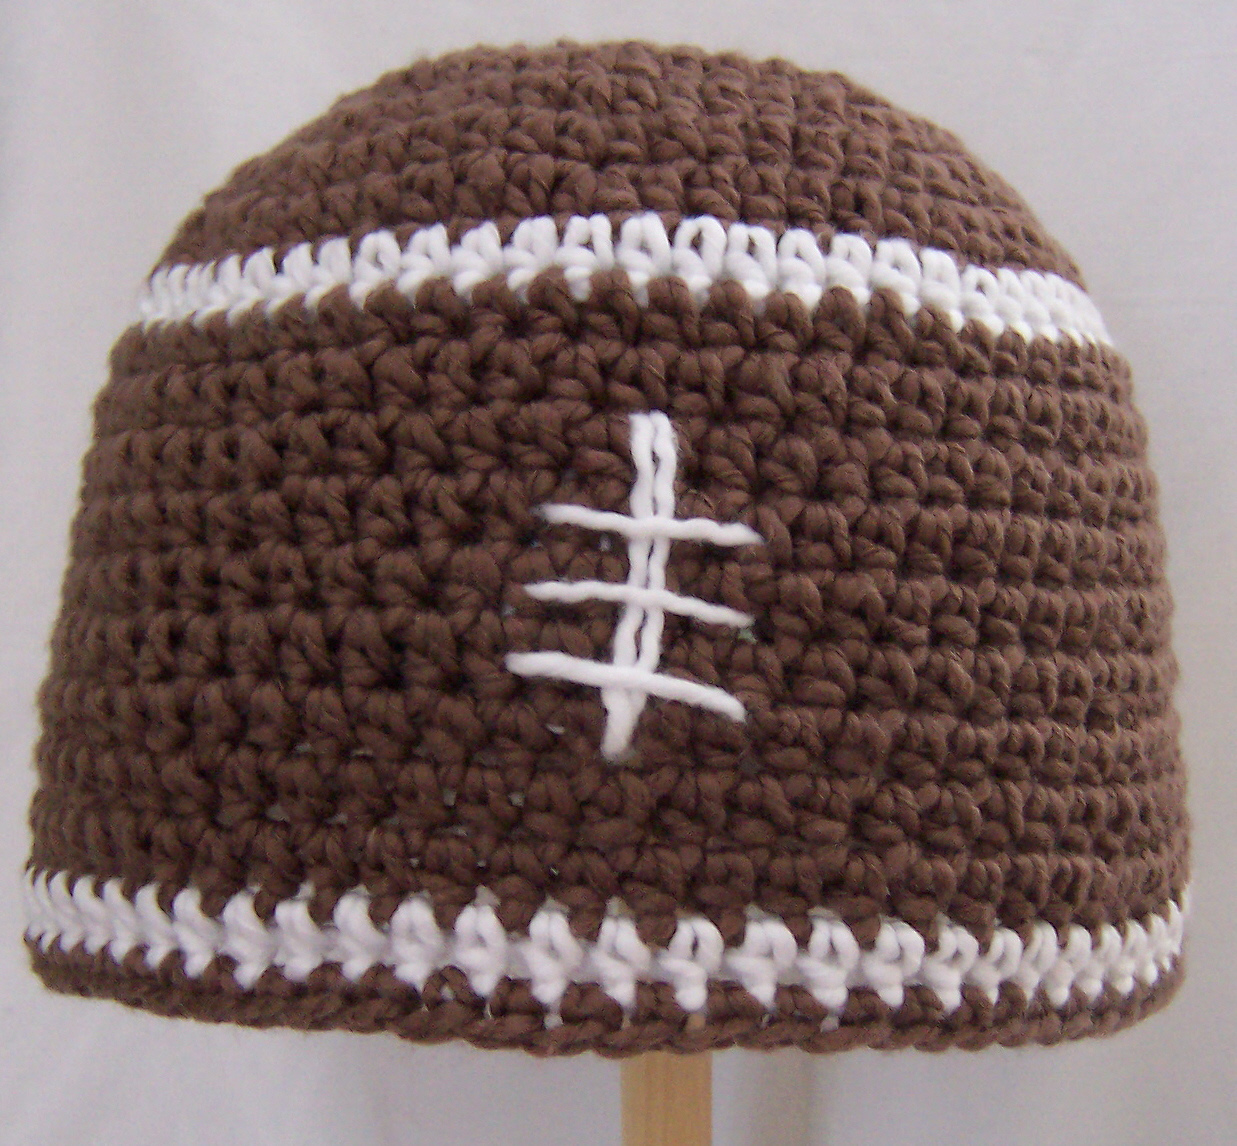 Free Crochet Patterns: Free Crochet Pattern - Football Beanie Chemo Hat